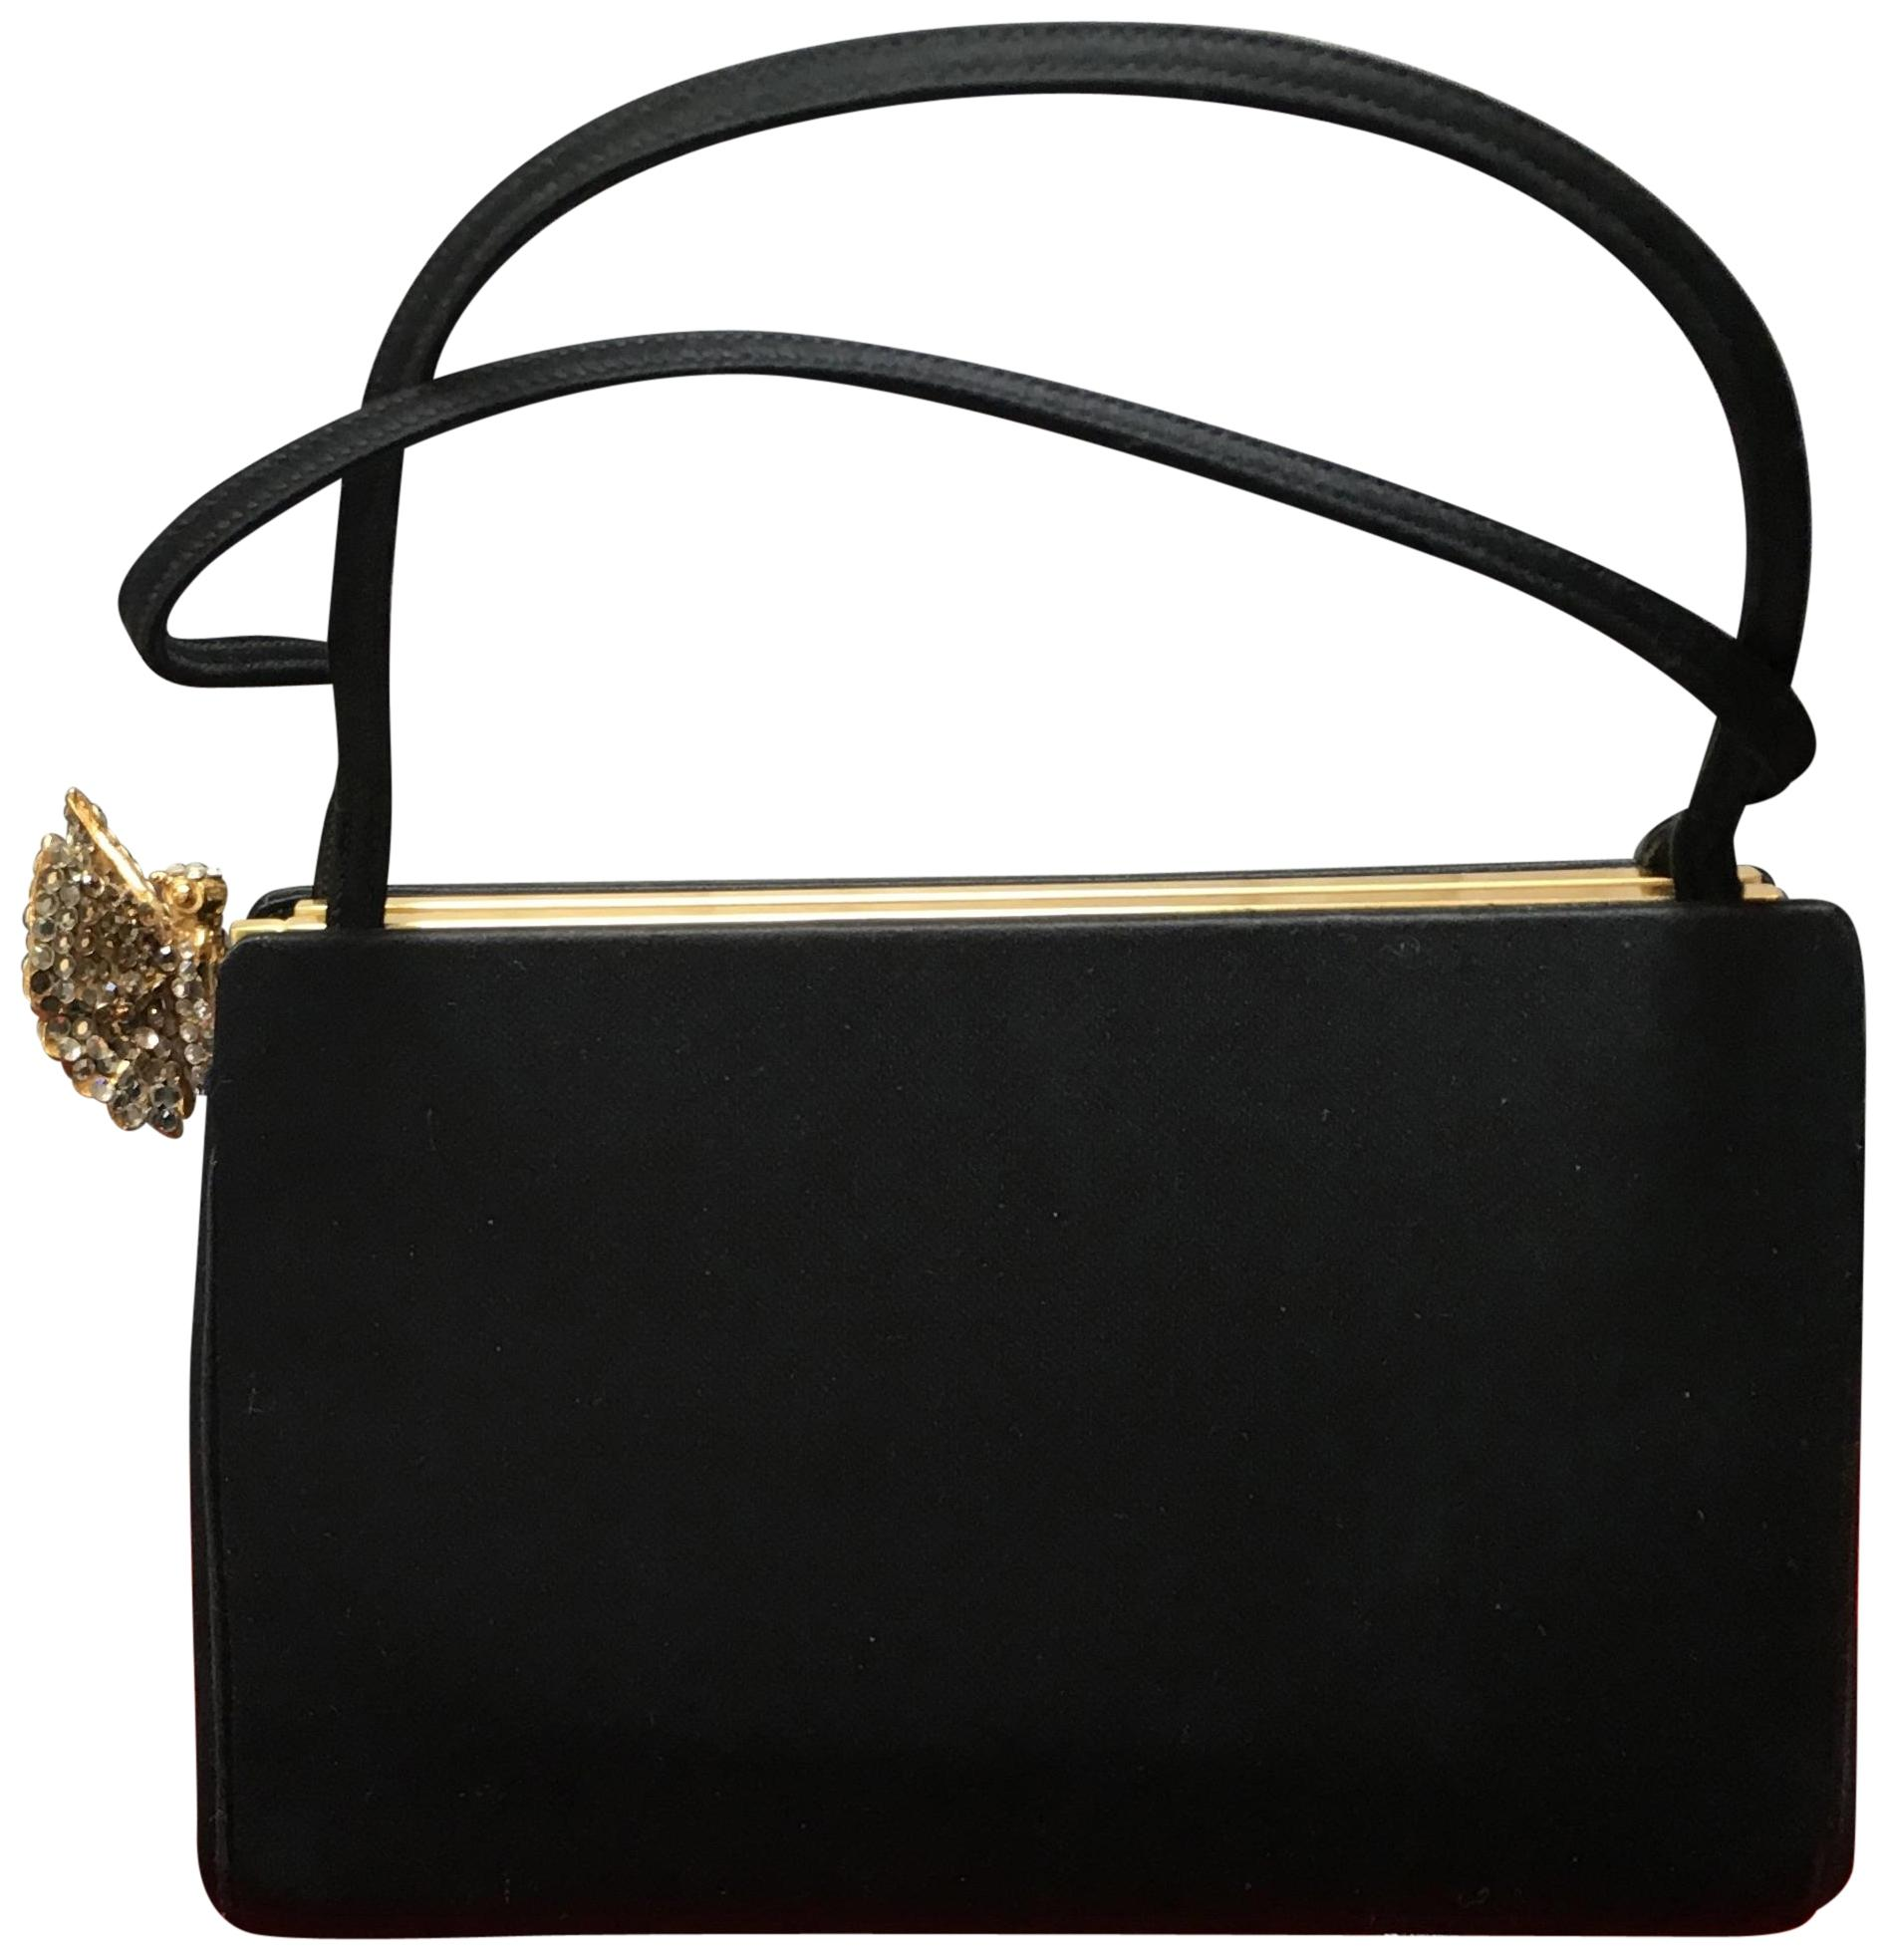 Judith Leiber Silk Handbag Sale Pay With Paypal Pay With Visa Cheap Online 100% Authentic Online Clearance Outlet Store aJb7oIKKF